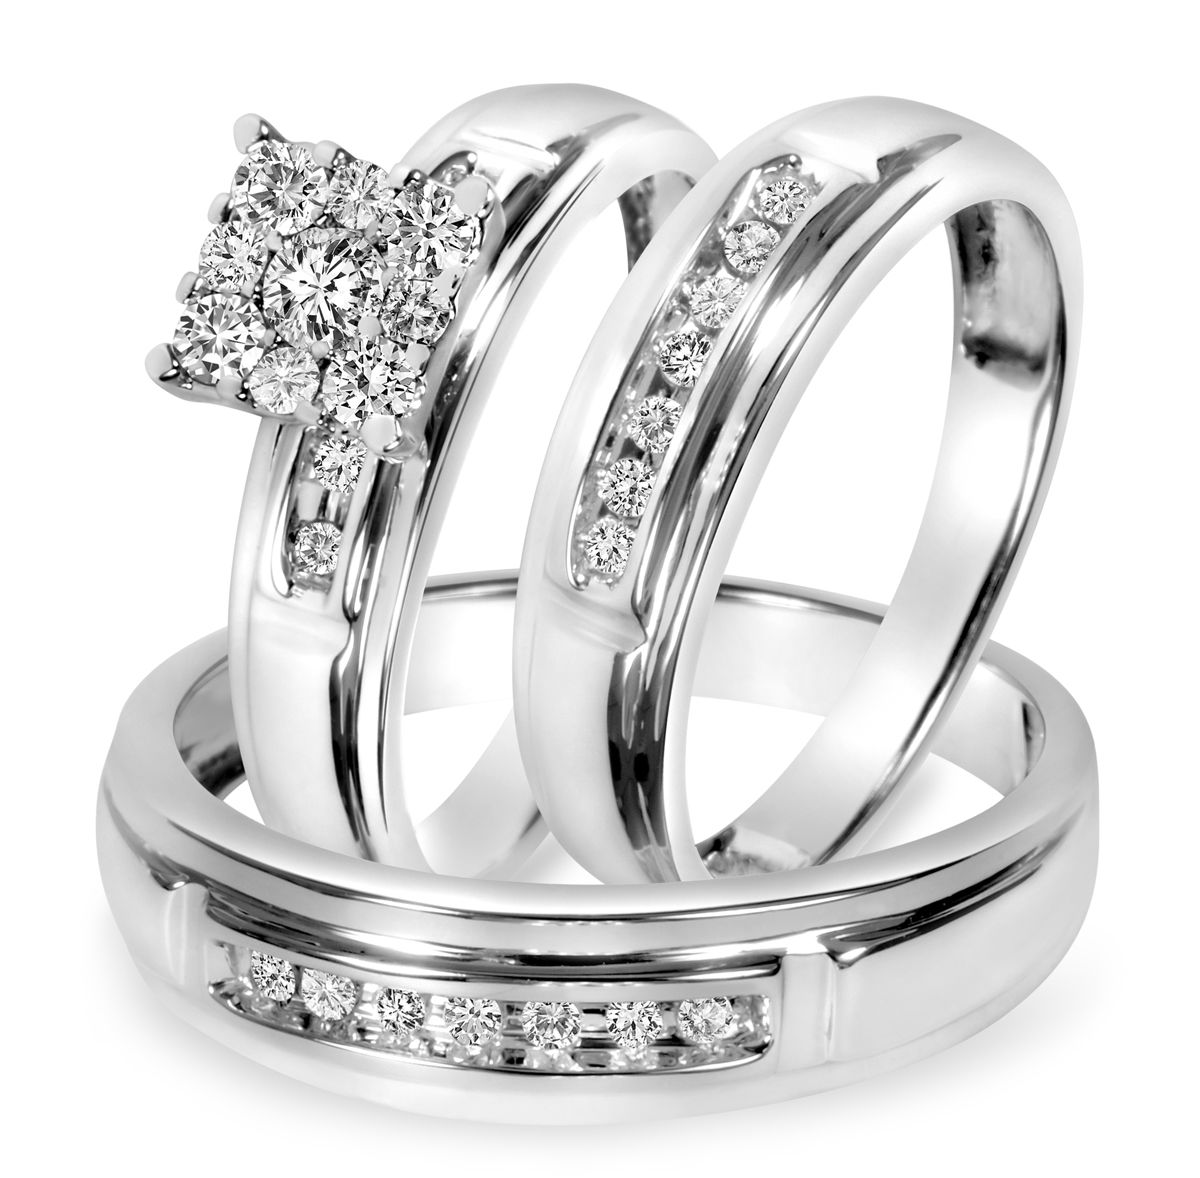 1/2 CT. T.W. Diamond Trio Matching Wedding Ring Set 14K White Gold ...